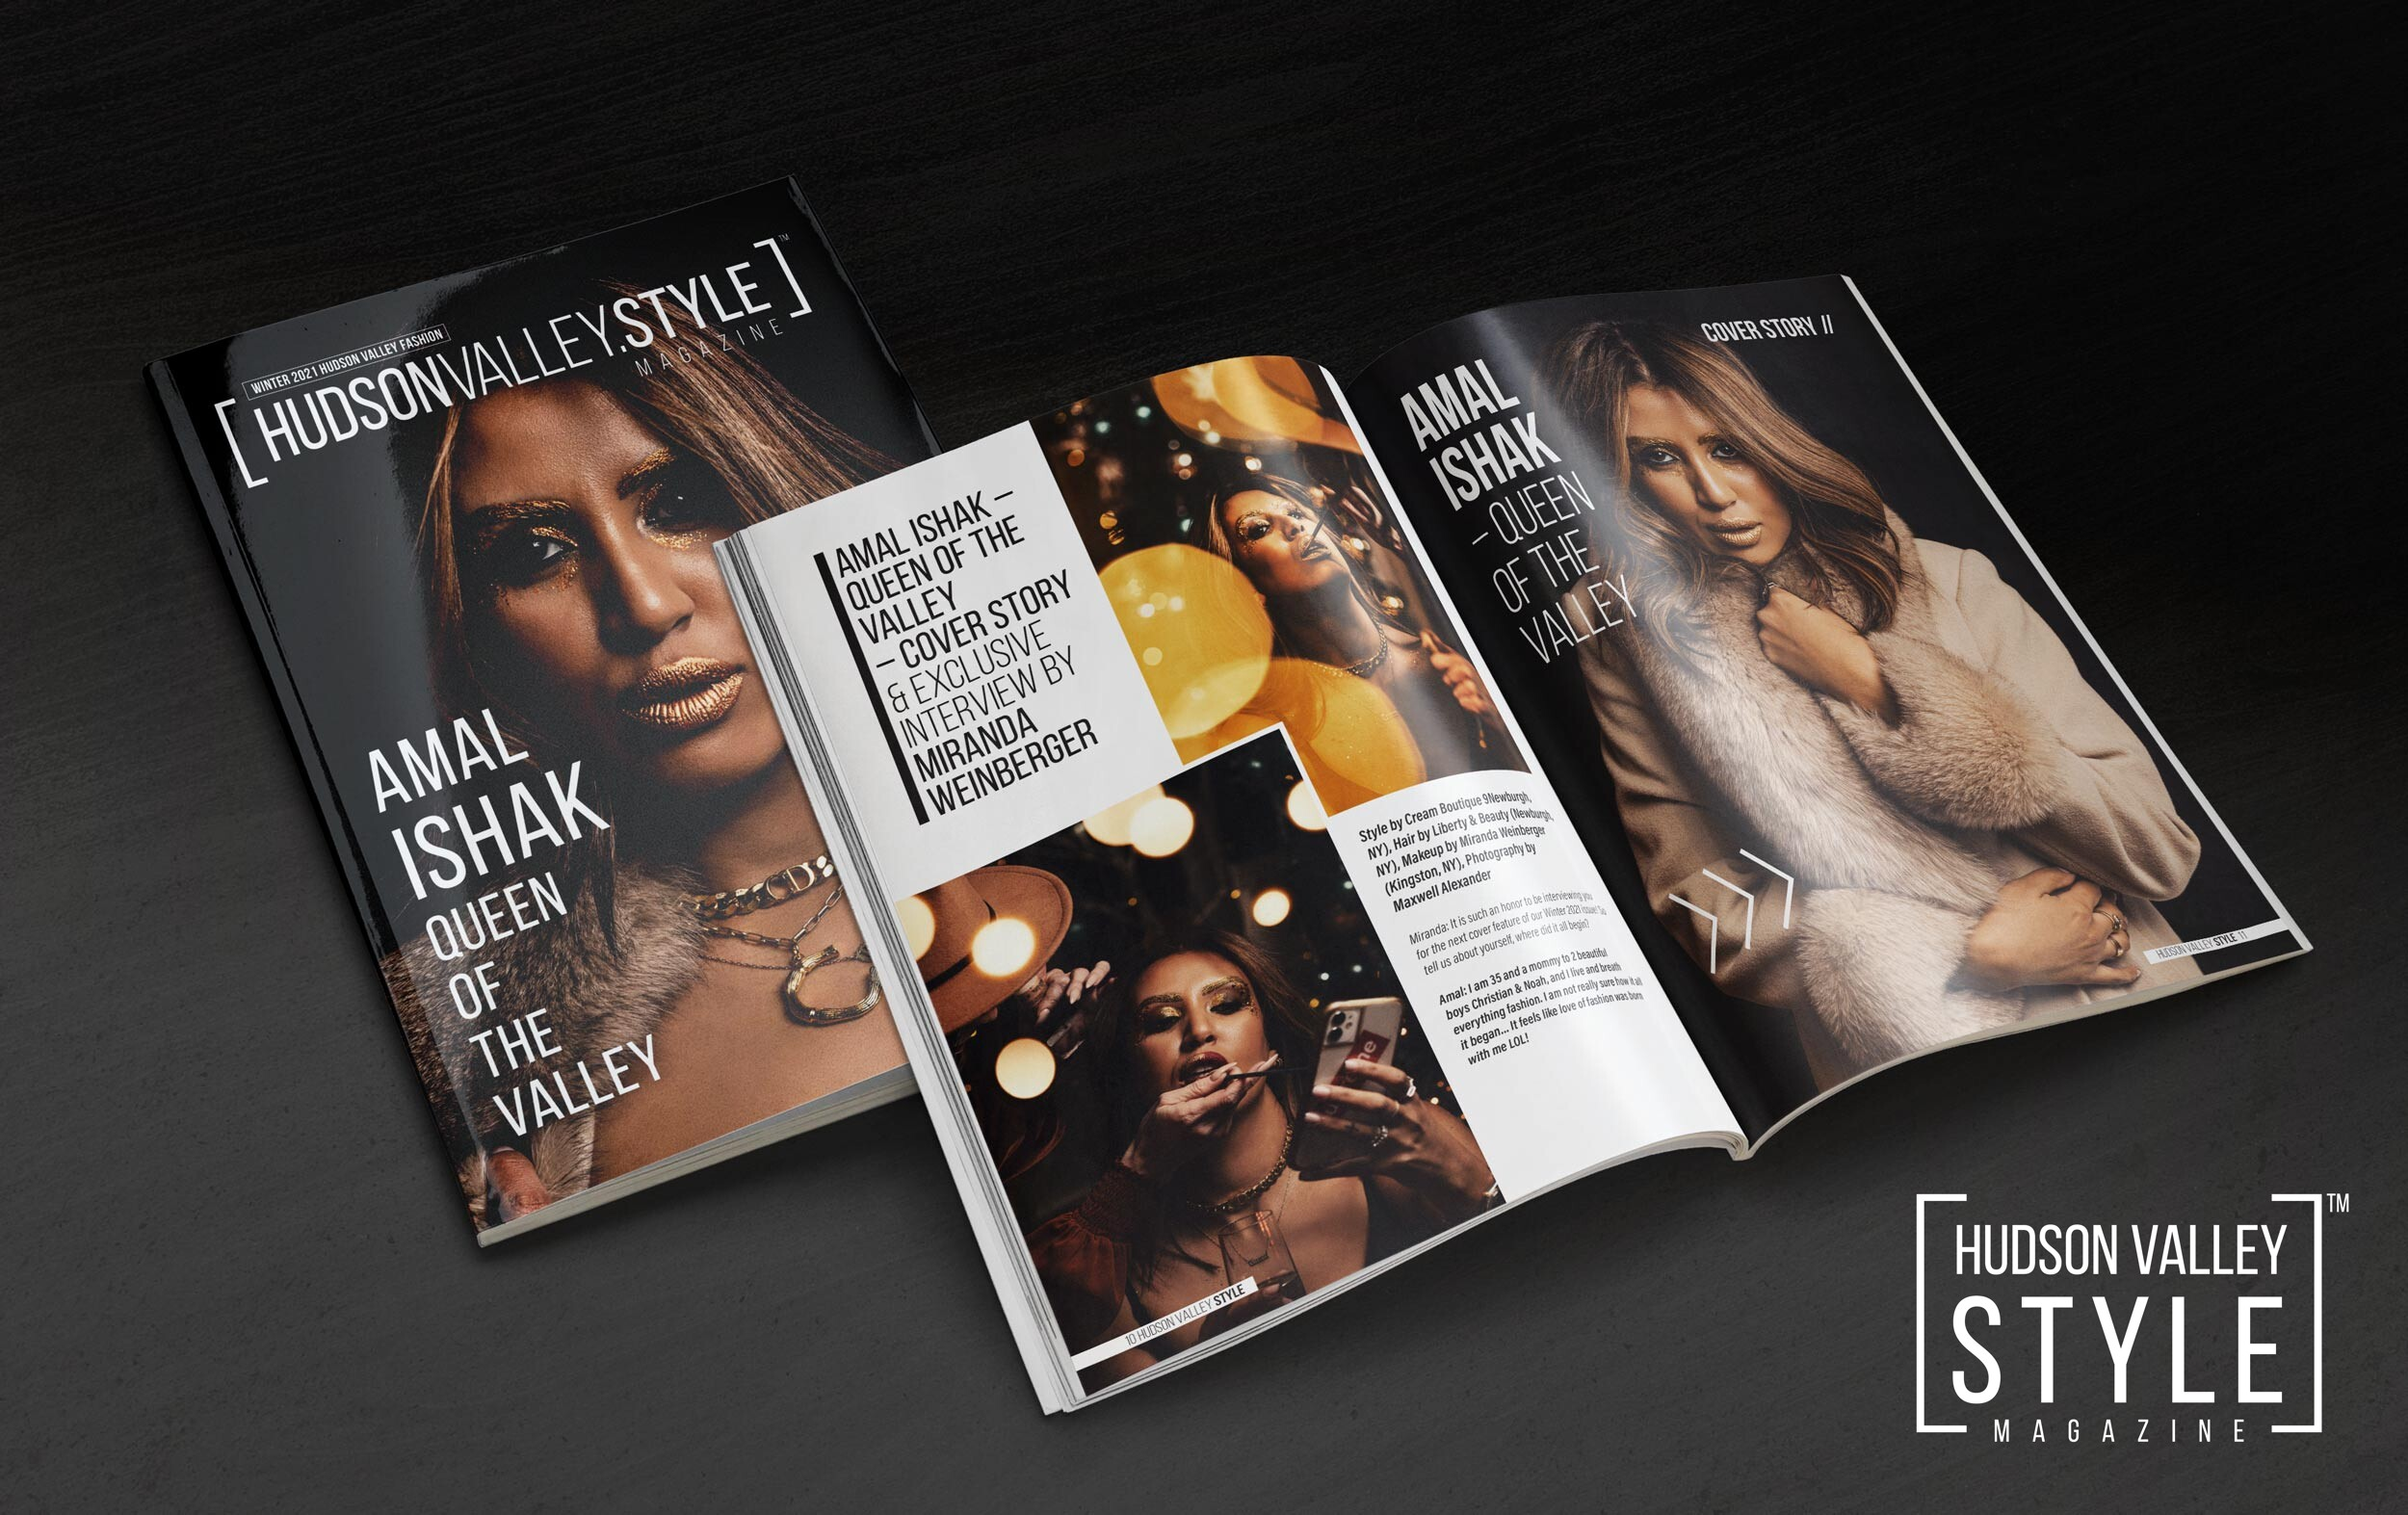 Amal Ishak – Queen of the Valley – Winter 2021 Fashion Edition